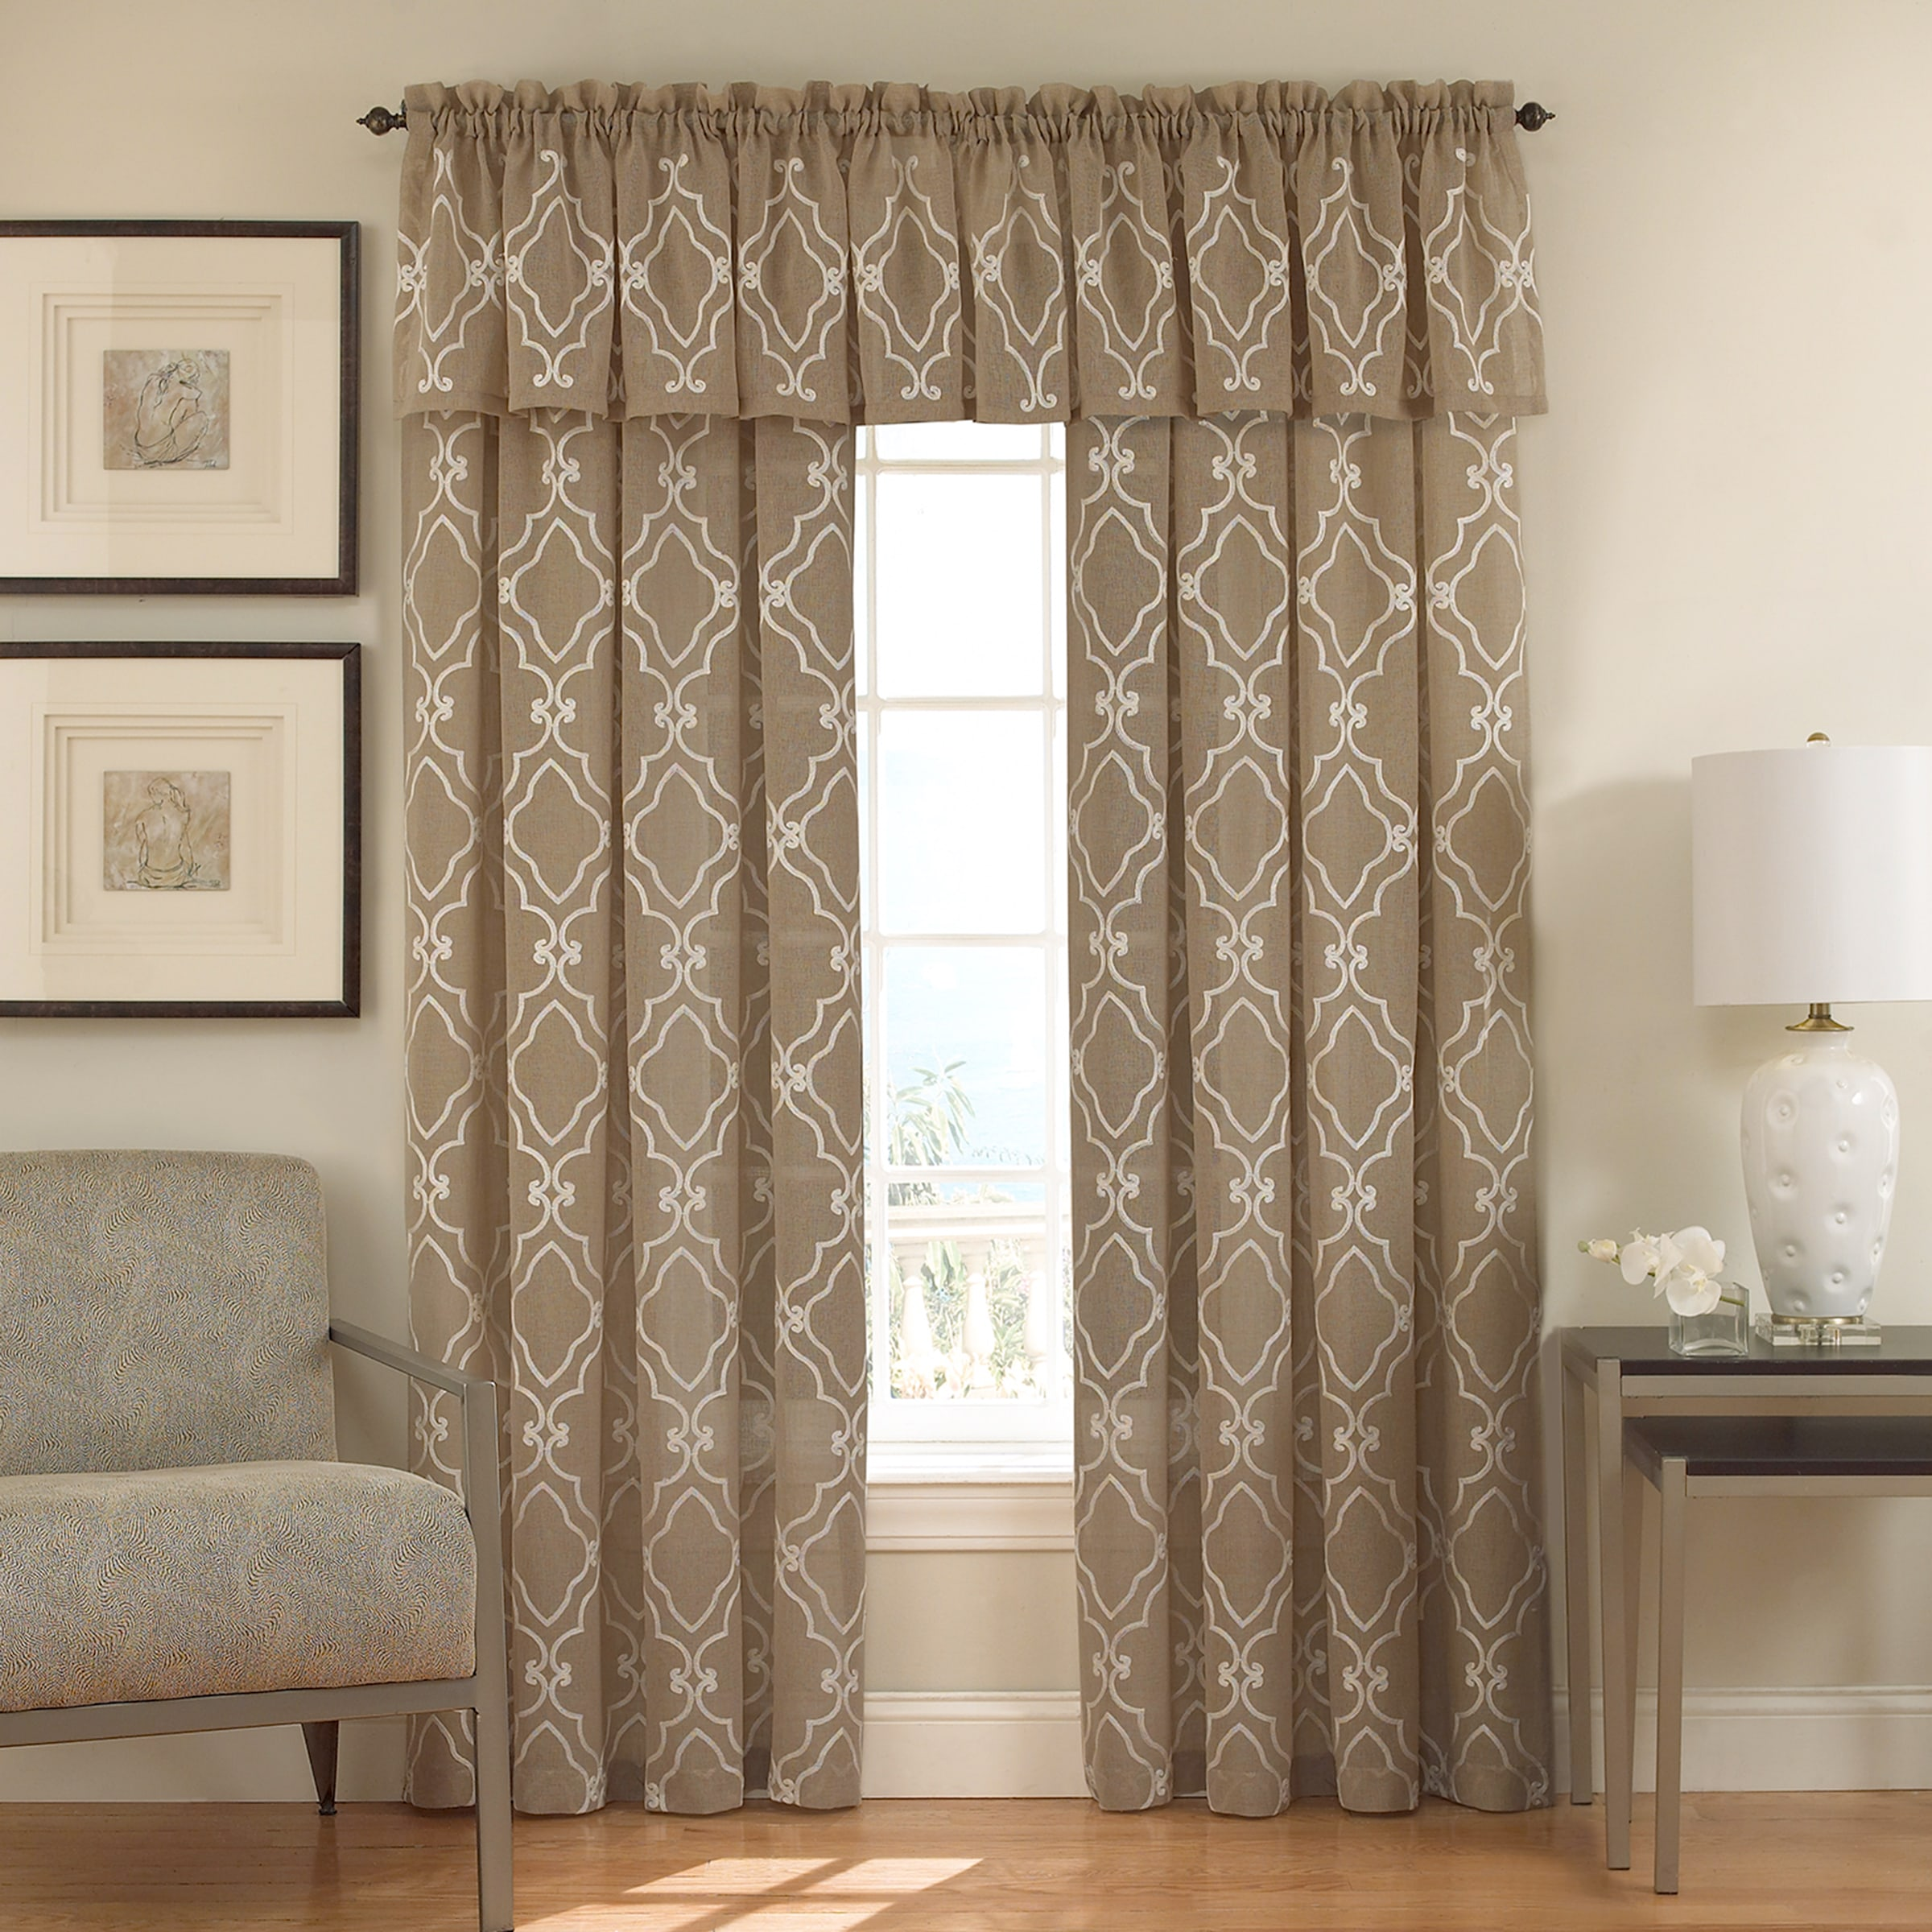 Carlyle Panel Featured with Valance